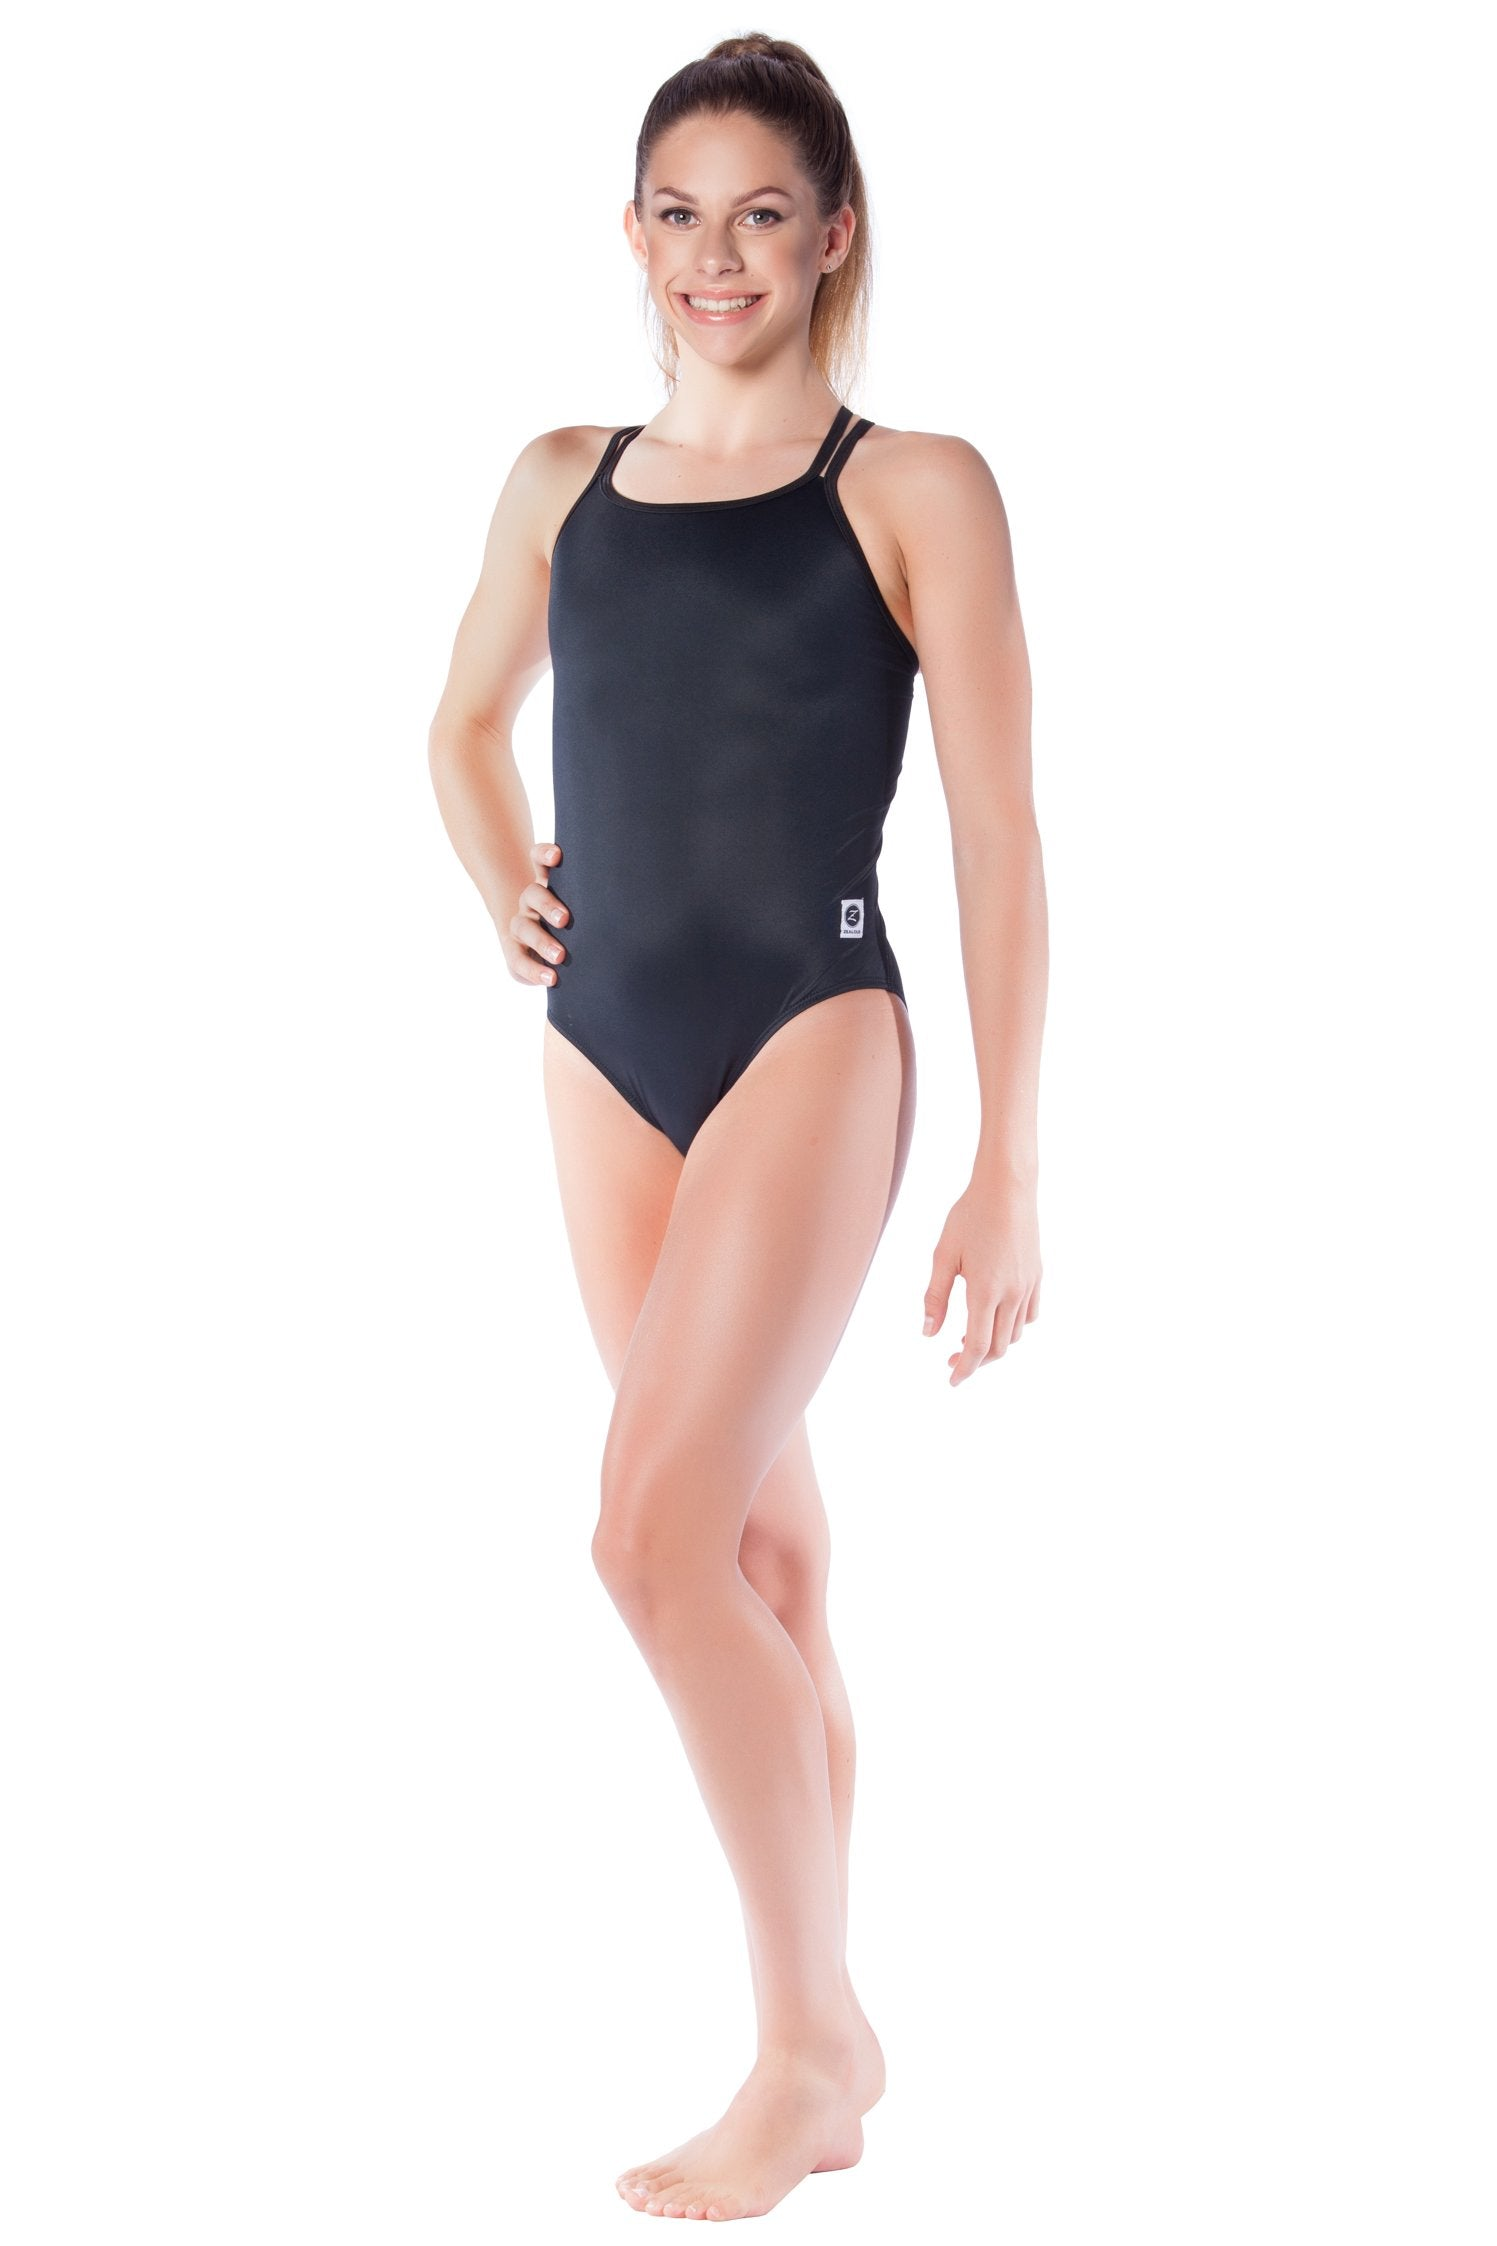 Pitch Black Girls Cross Back - Shop Zealous Training Swimwear